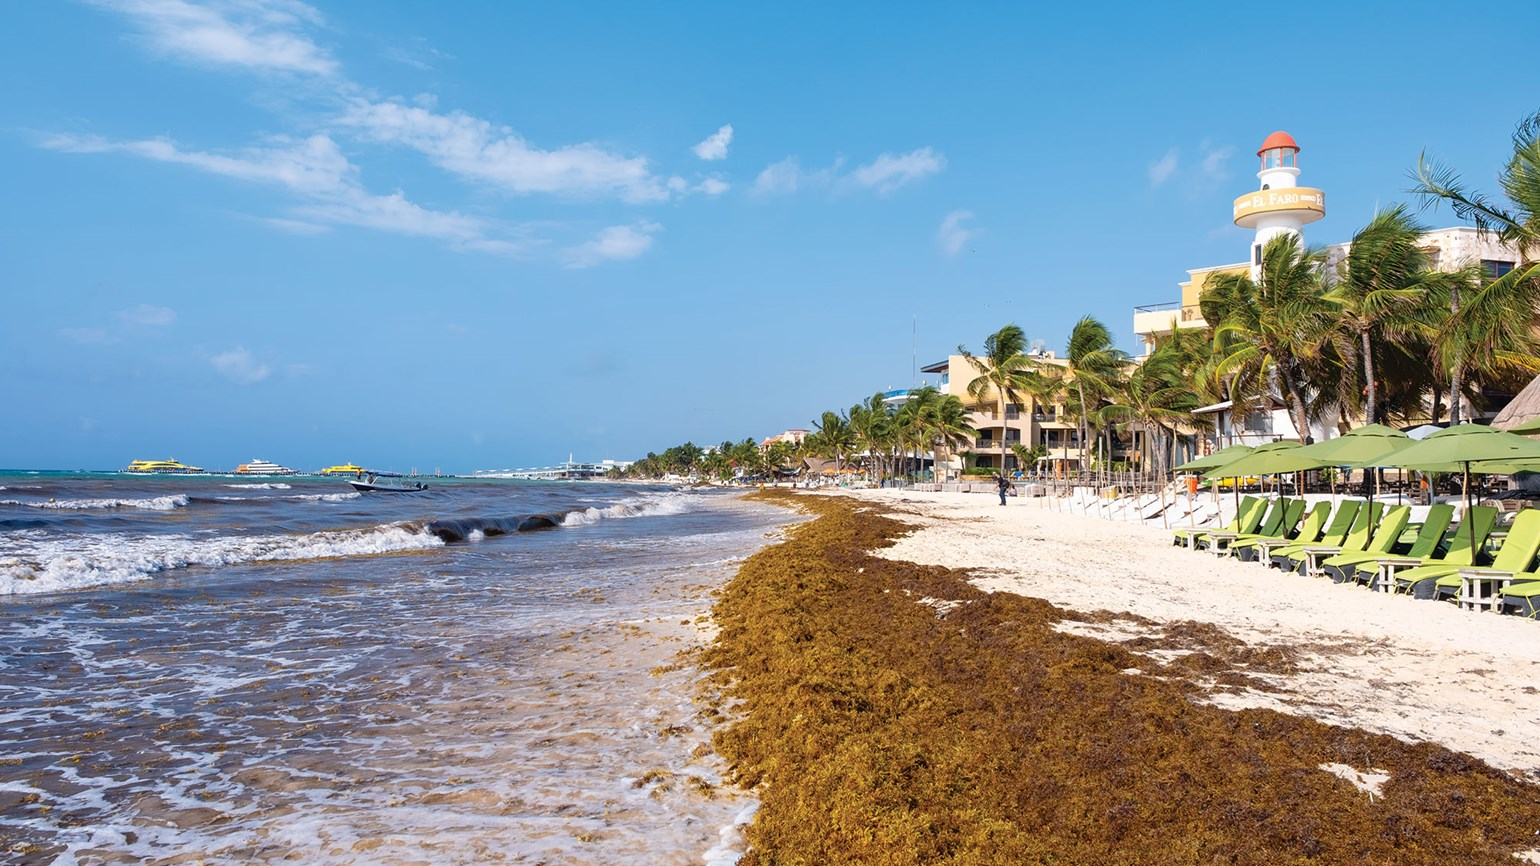 Mexican Resorts Get Creative To Deal With Sargassum Travel Weekly